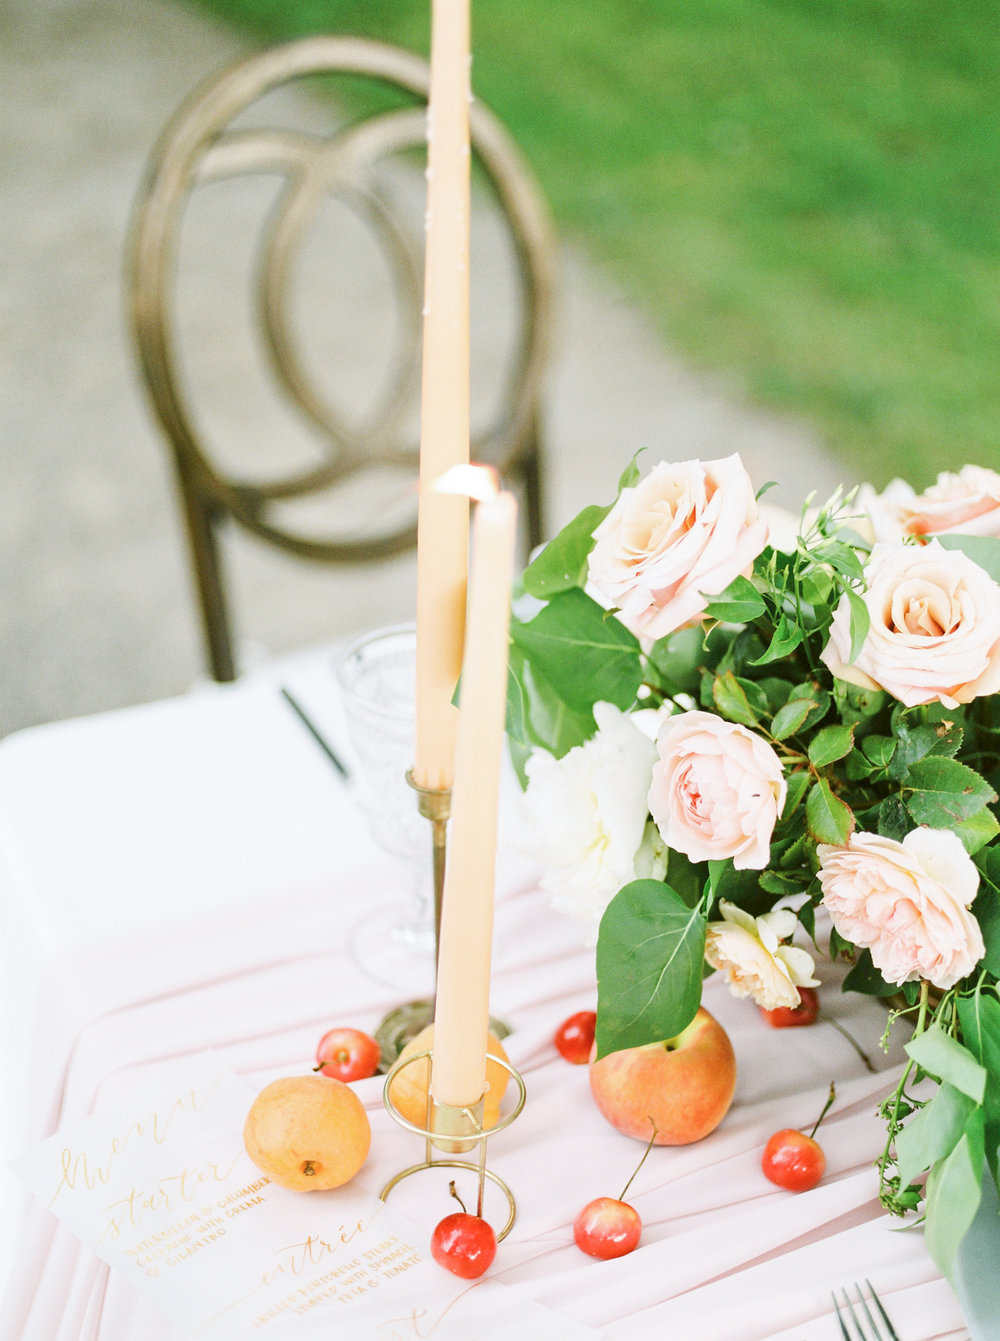 Countryside Inspiration - Styled ShootDundurn Castle